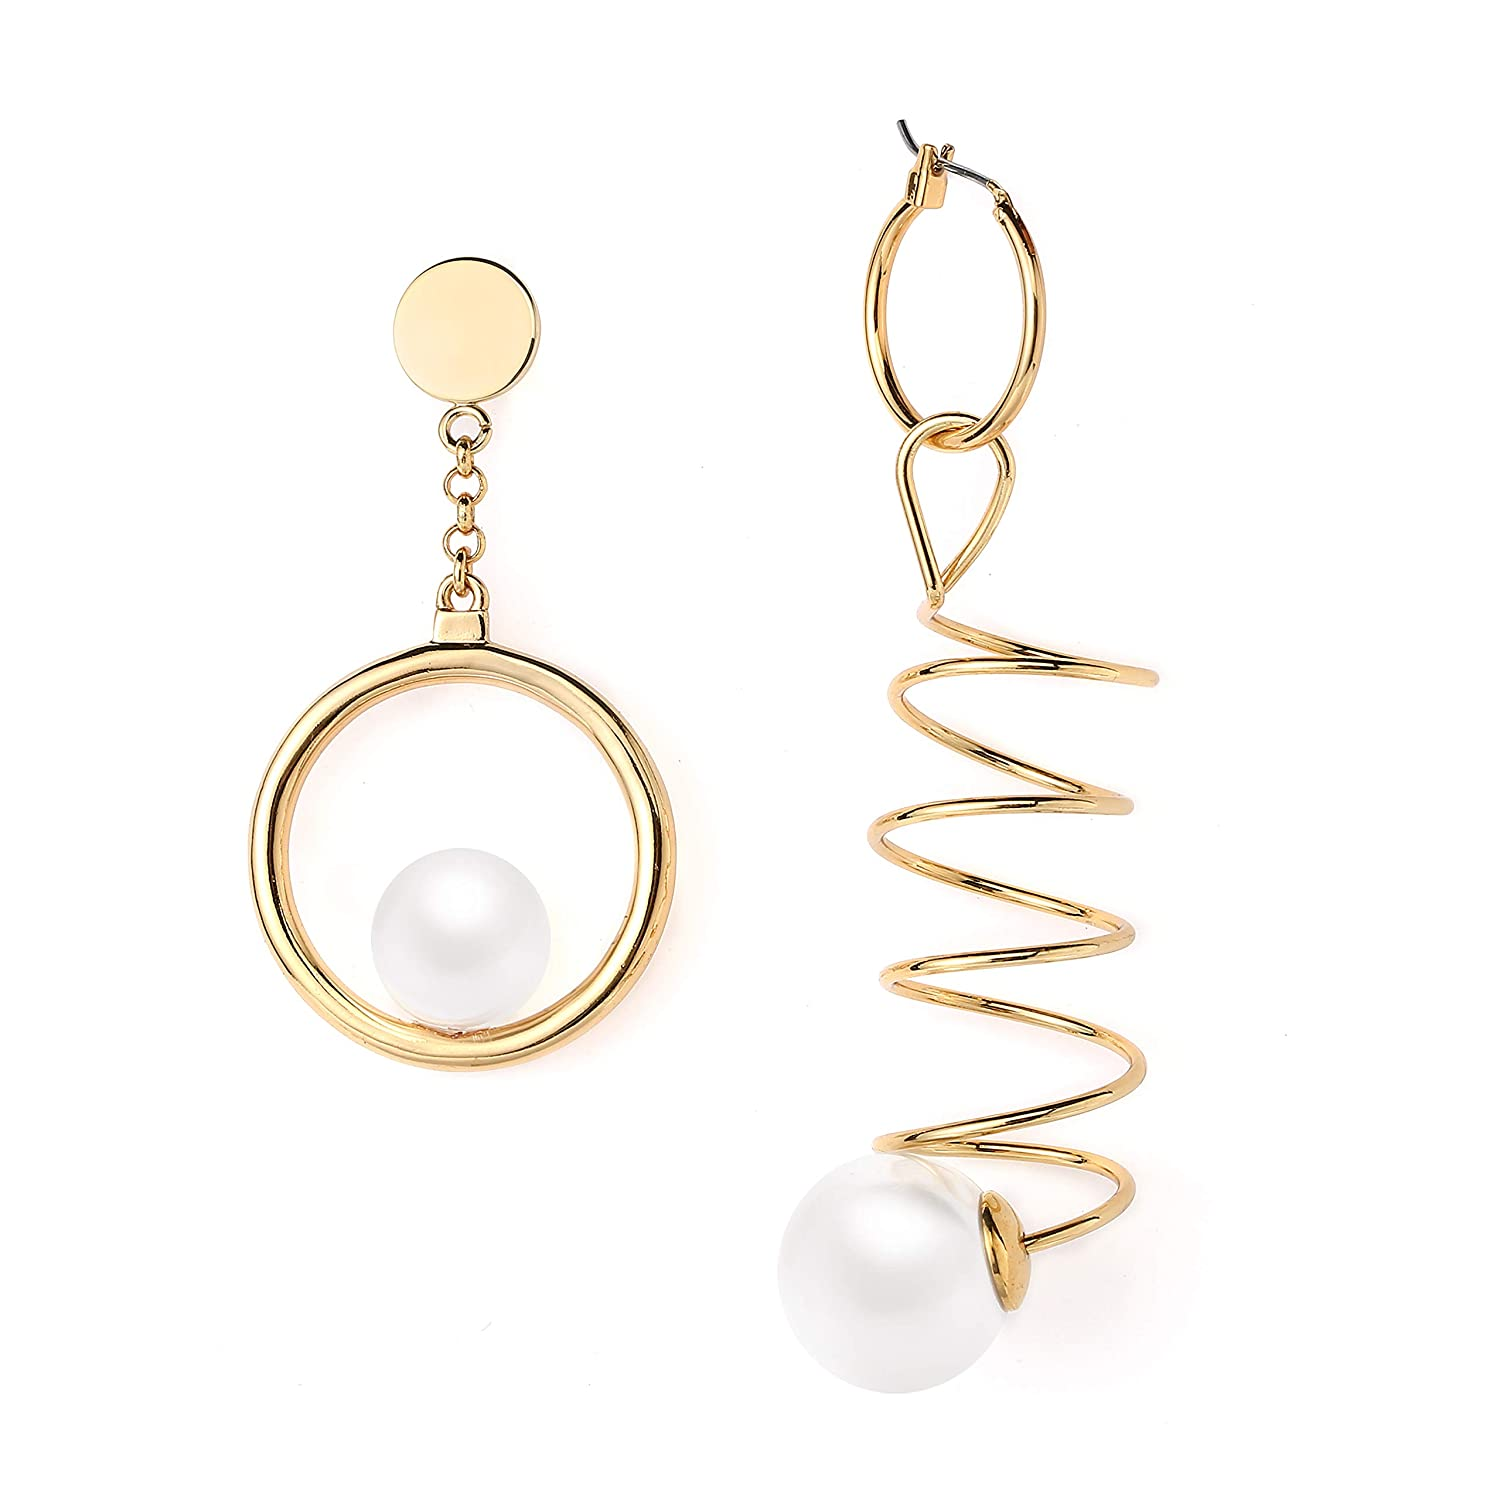 AiryAi Asymmetric Dangle Earrings Pearl on Big Ring Exaggerate Spiraling Spring Ends Pearl 20K Gold Plated Over Metal Fashion-catching 2018 Autumn Winter Style Women /& Girls